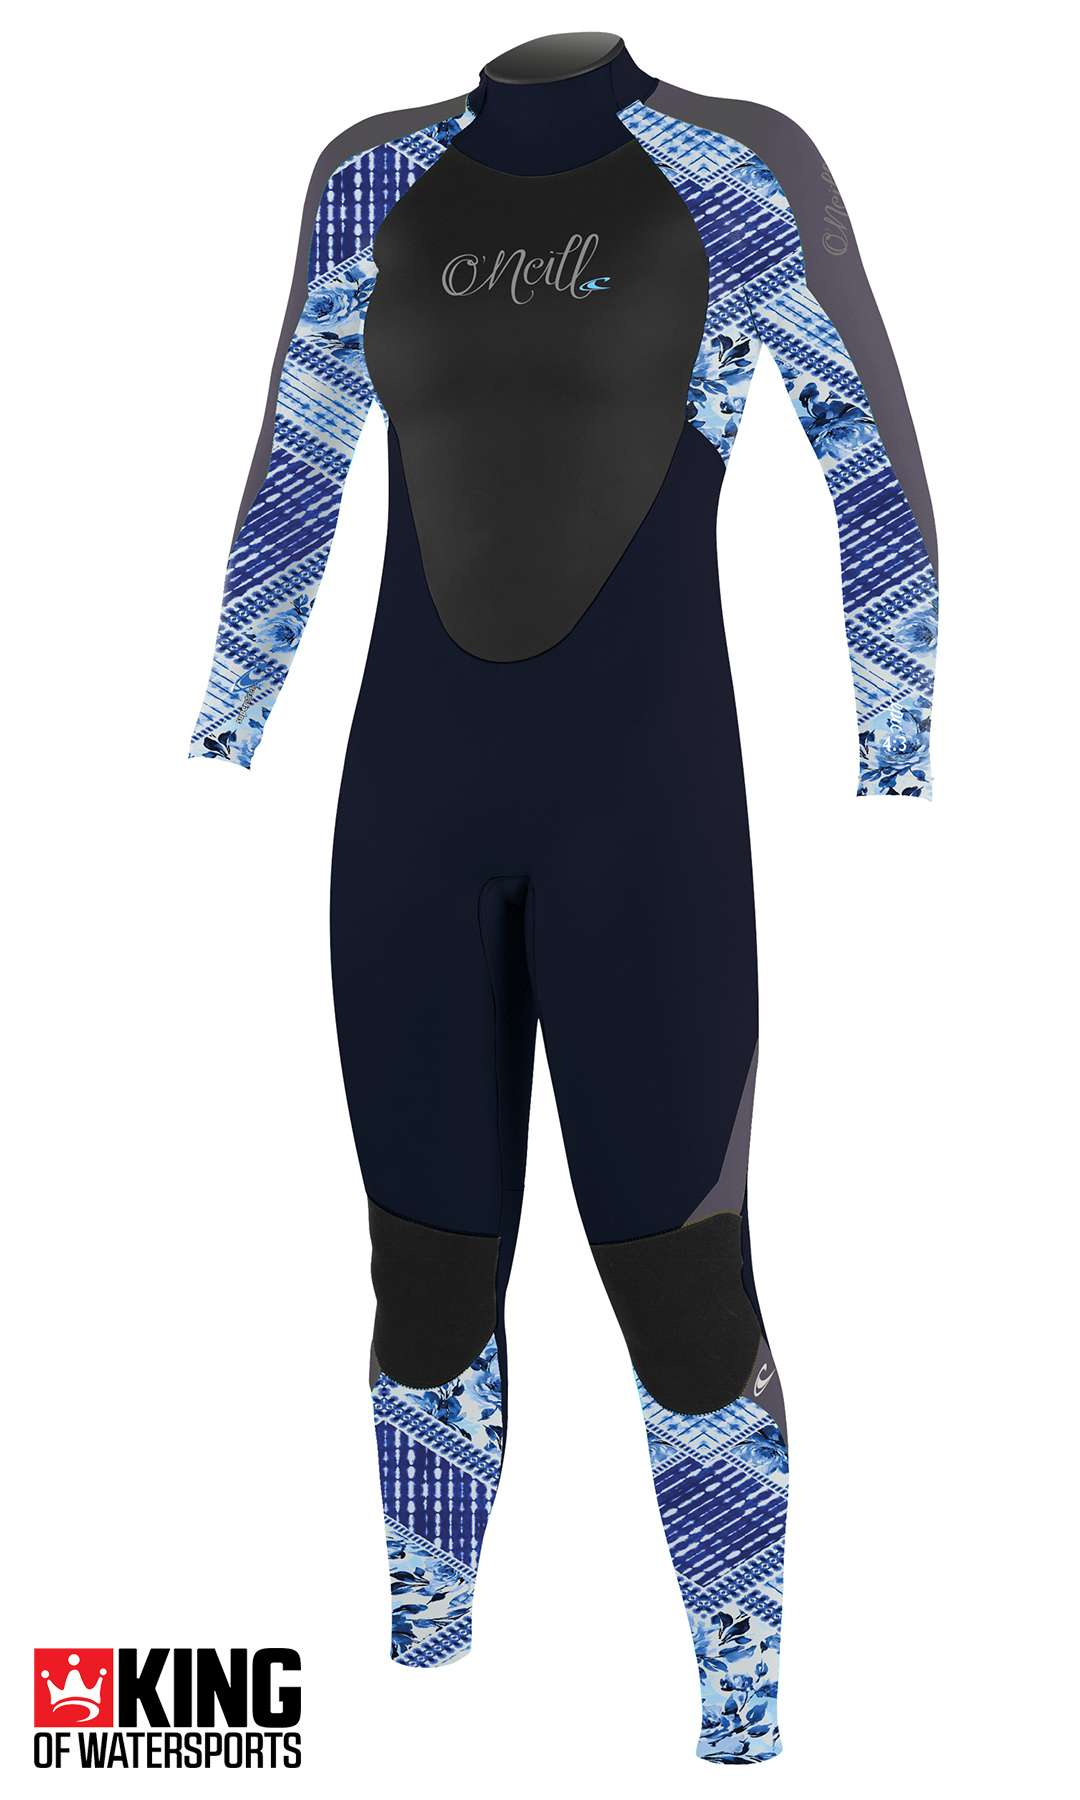 O Neill Womens Epic 3 2 Wetsuit 2018  262044631